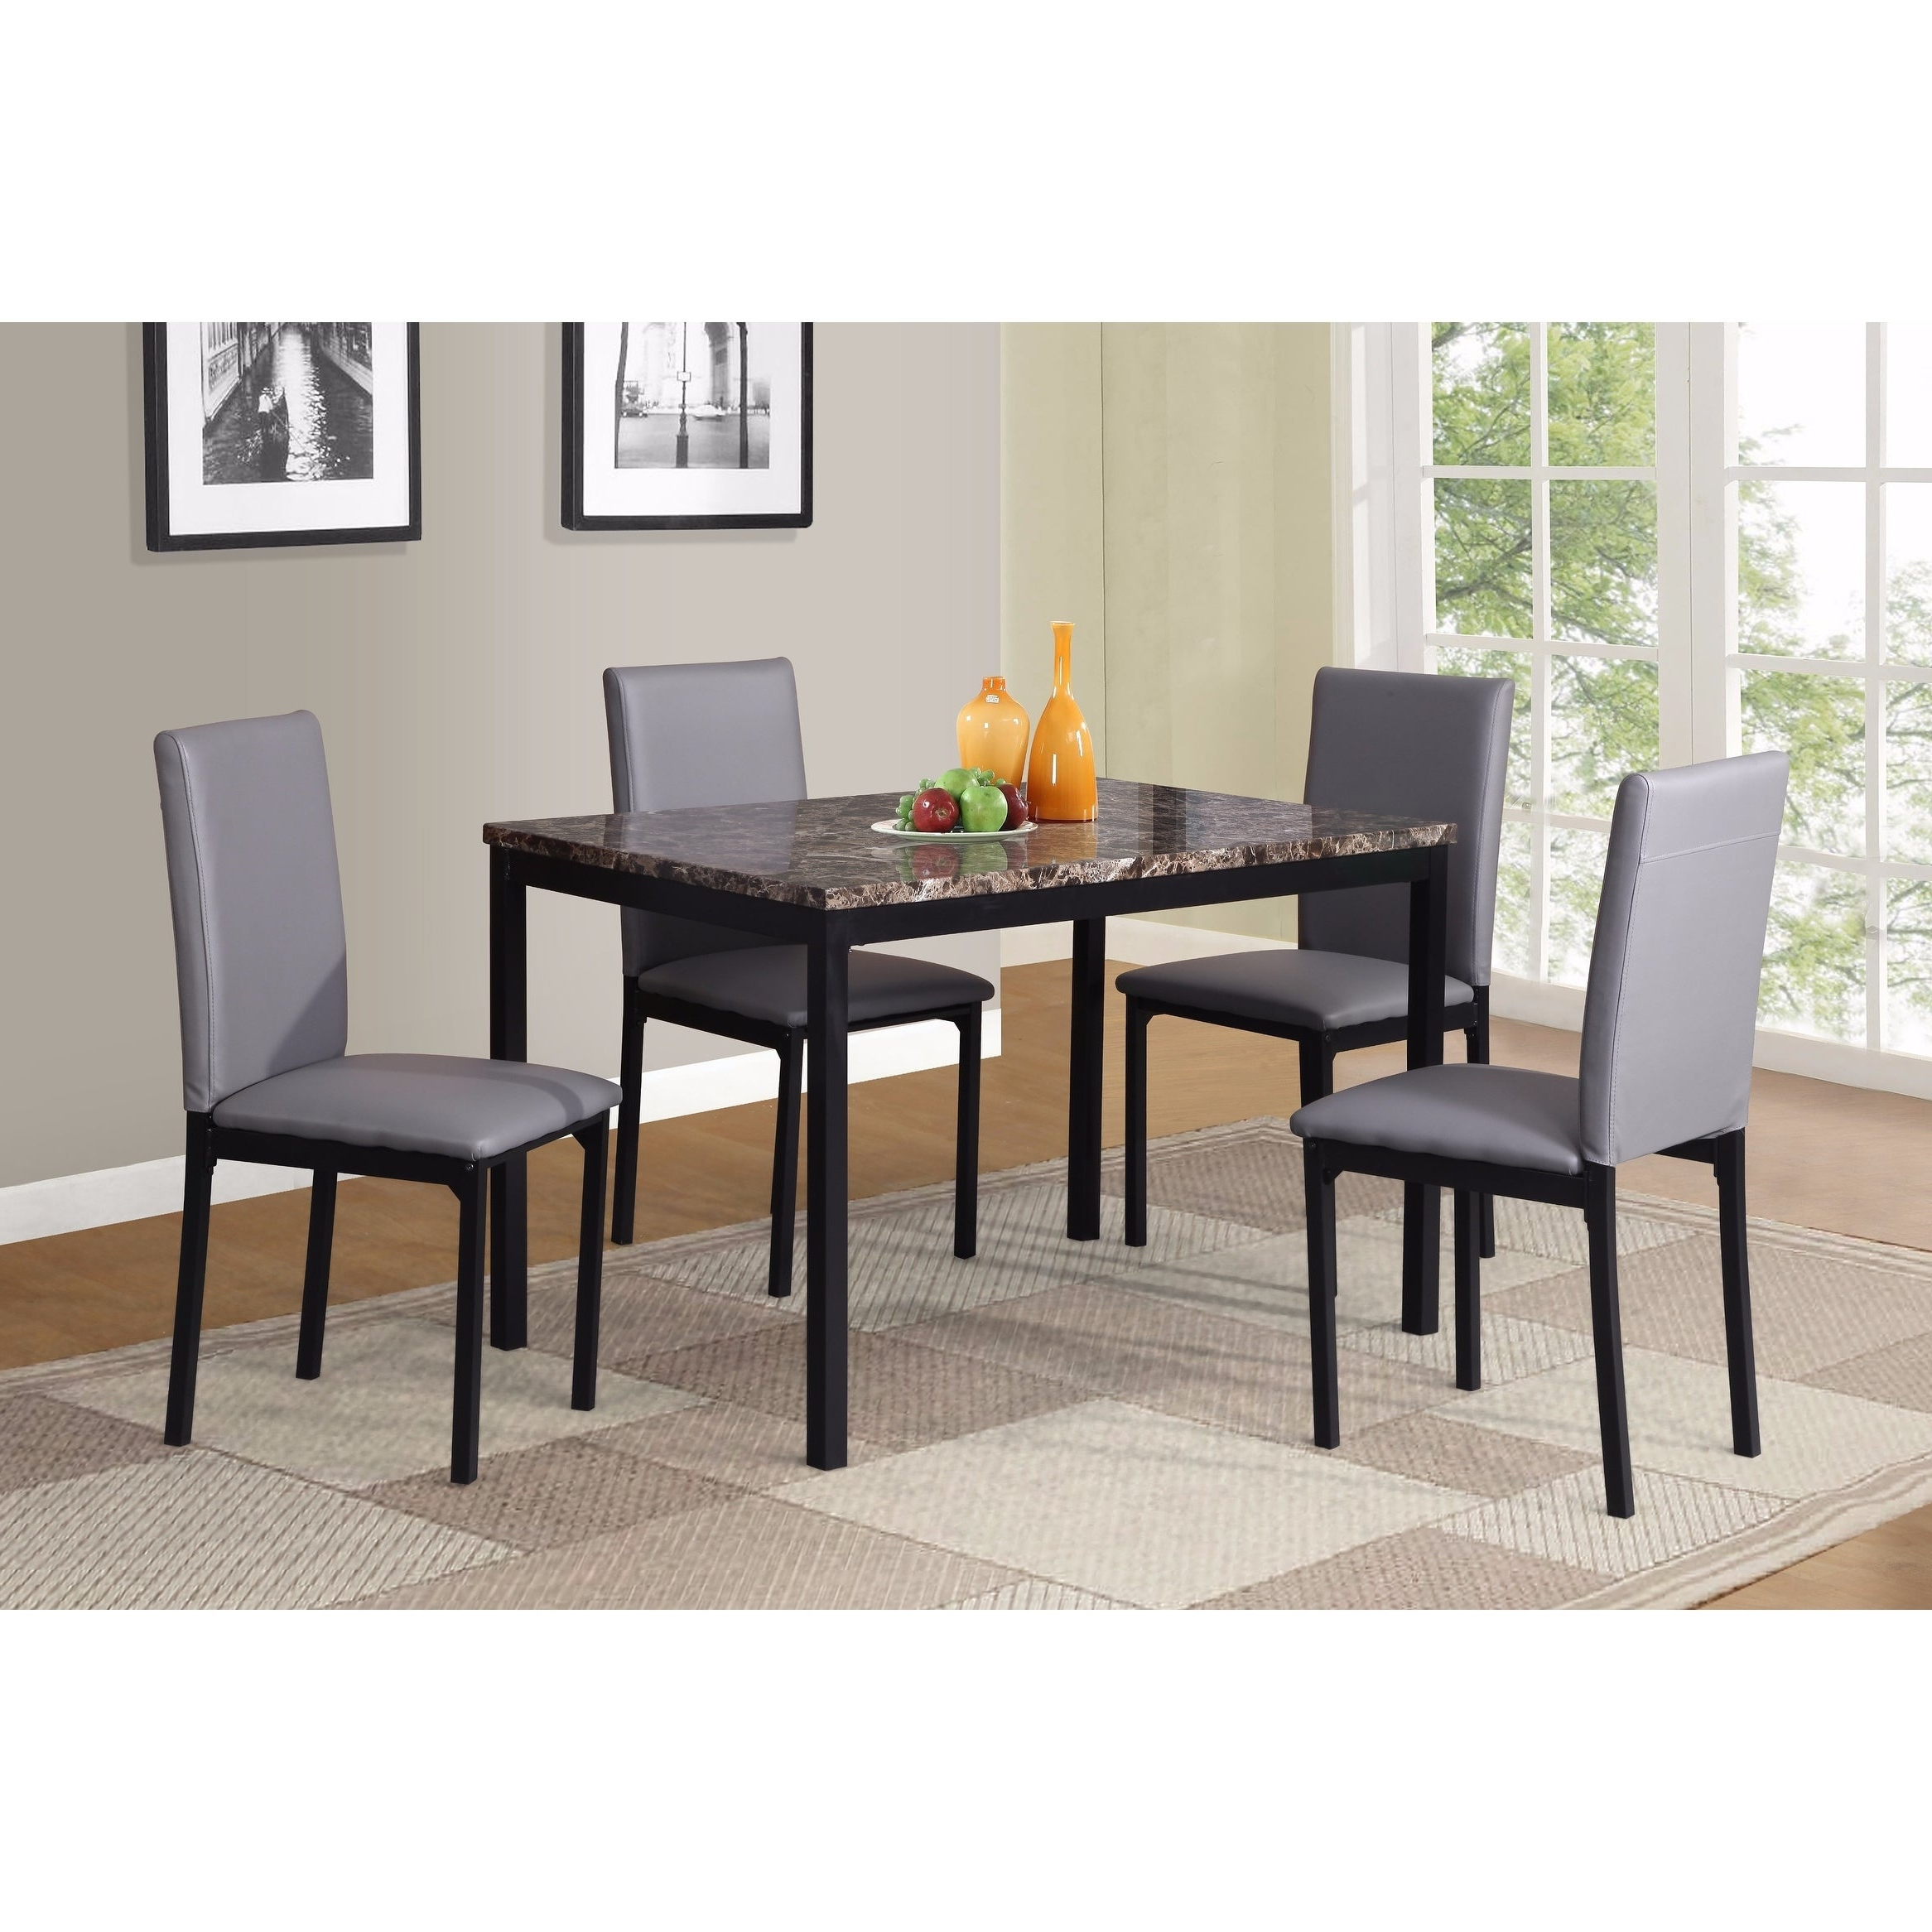 Noyes 5 Piece Dining Sets Within 2019 Shop Noyes Faux Leather Seat Metal Frame Black Dining Chairs, Set Of (View 15 of 25)